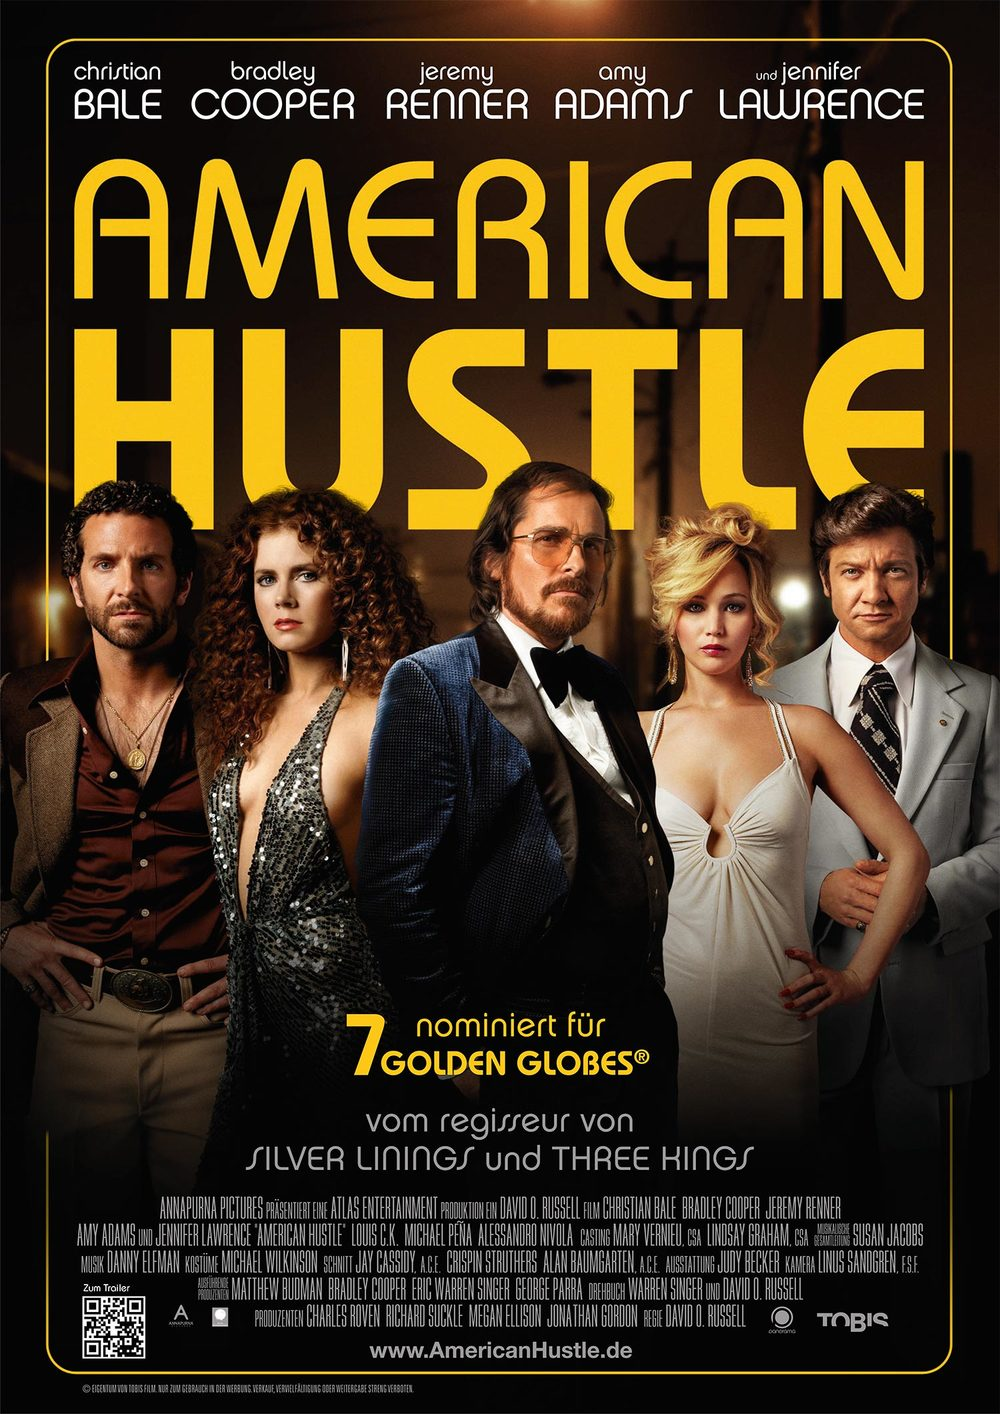 "Tobis<a href=""/american-hustle"">→</a><strong>Adaption</strong>"